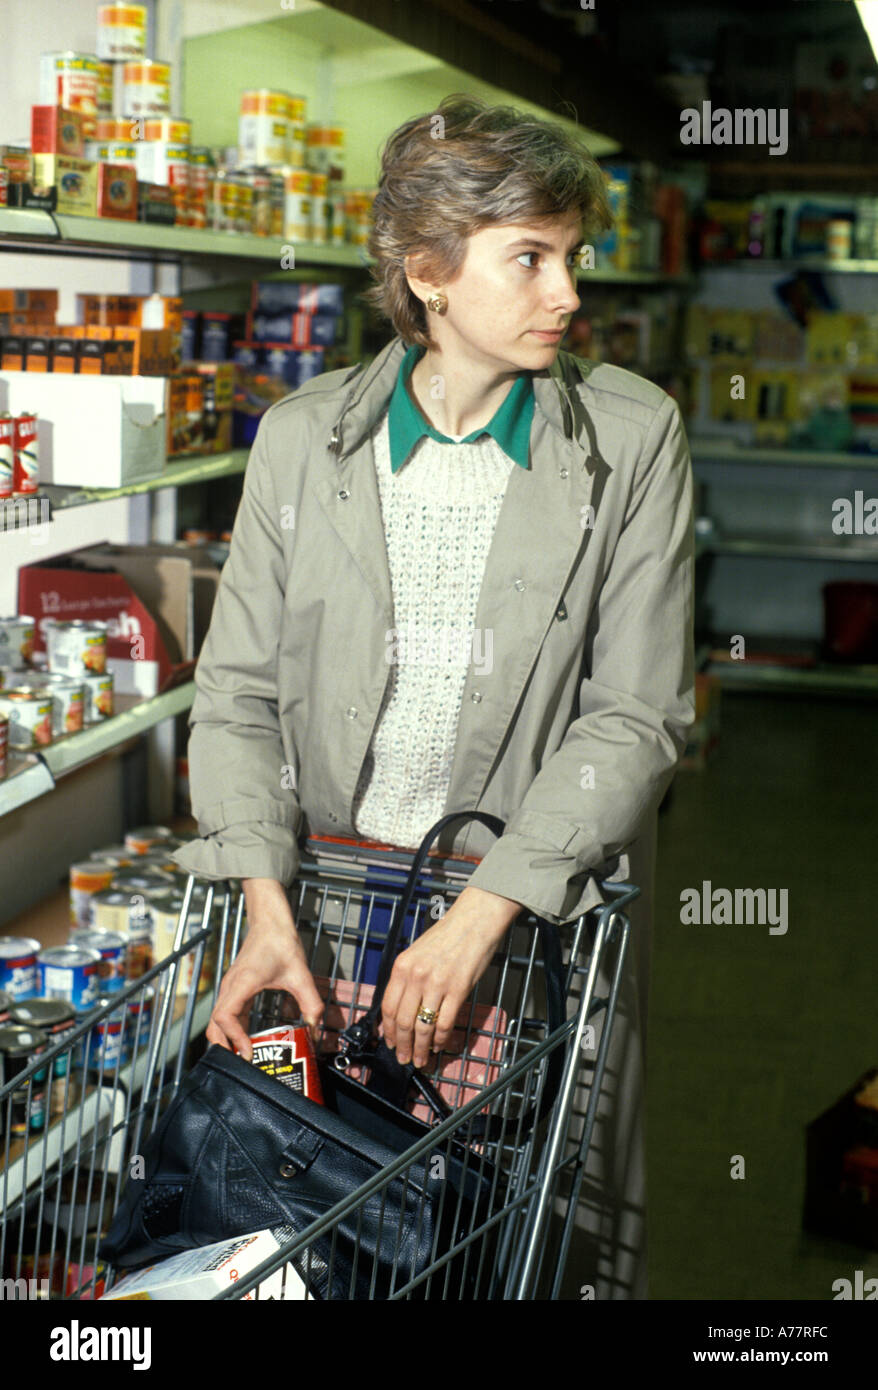 woman shop lifting in supermarket - Stock Image